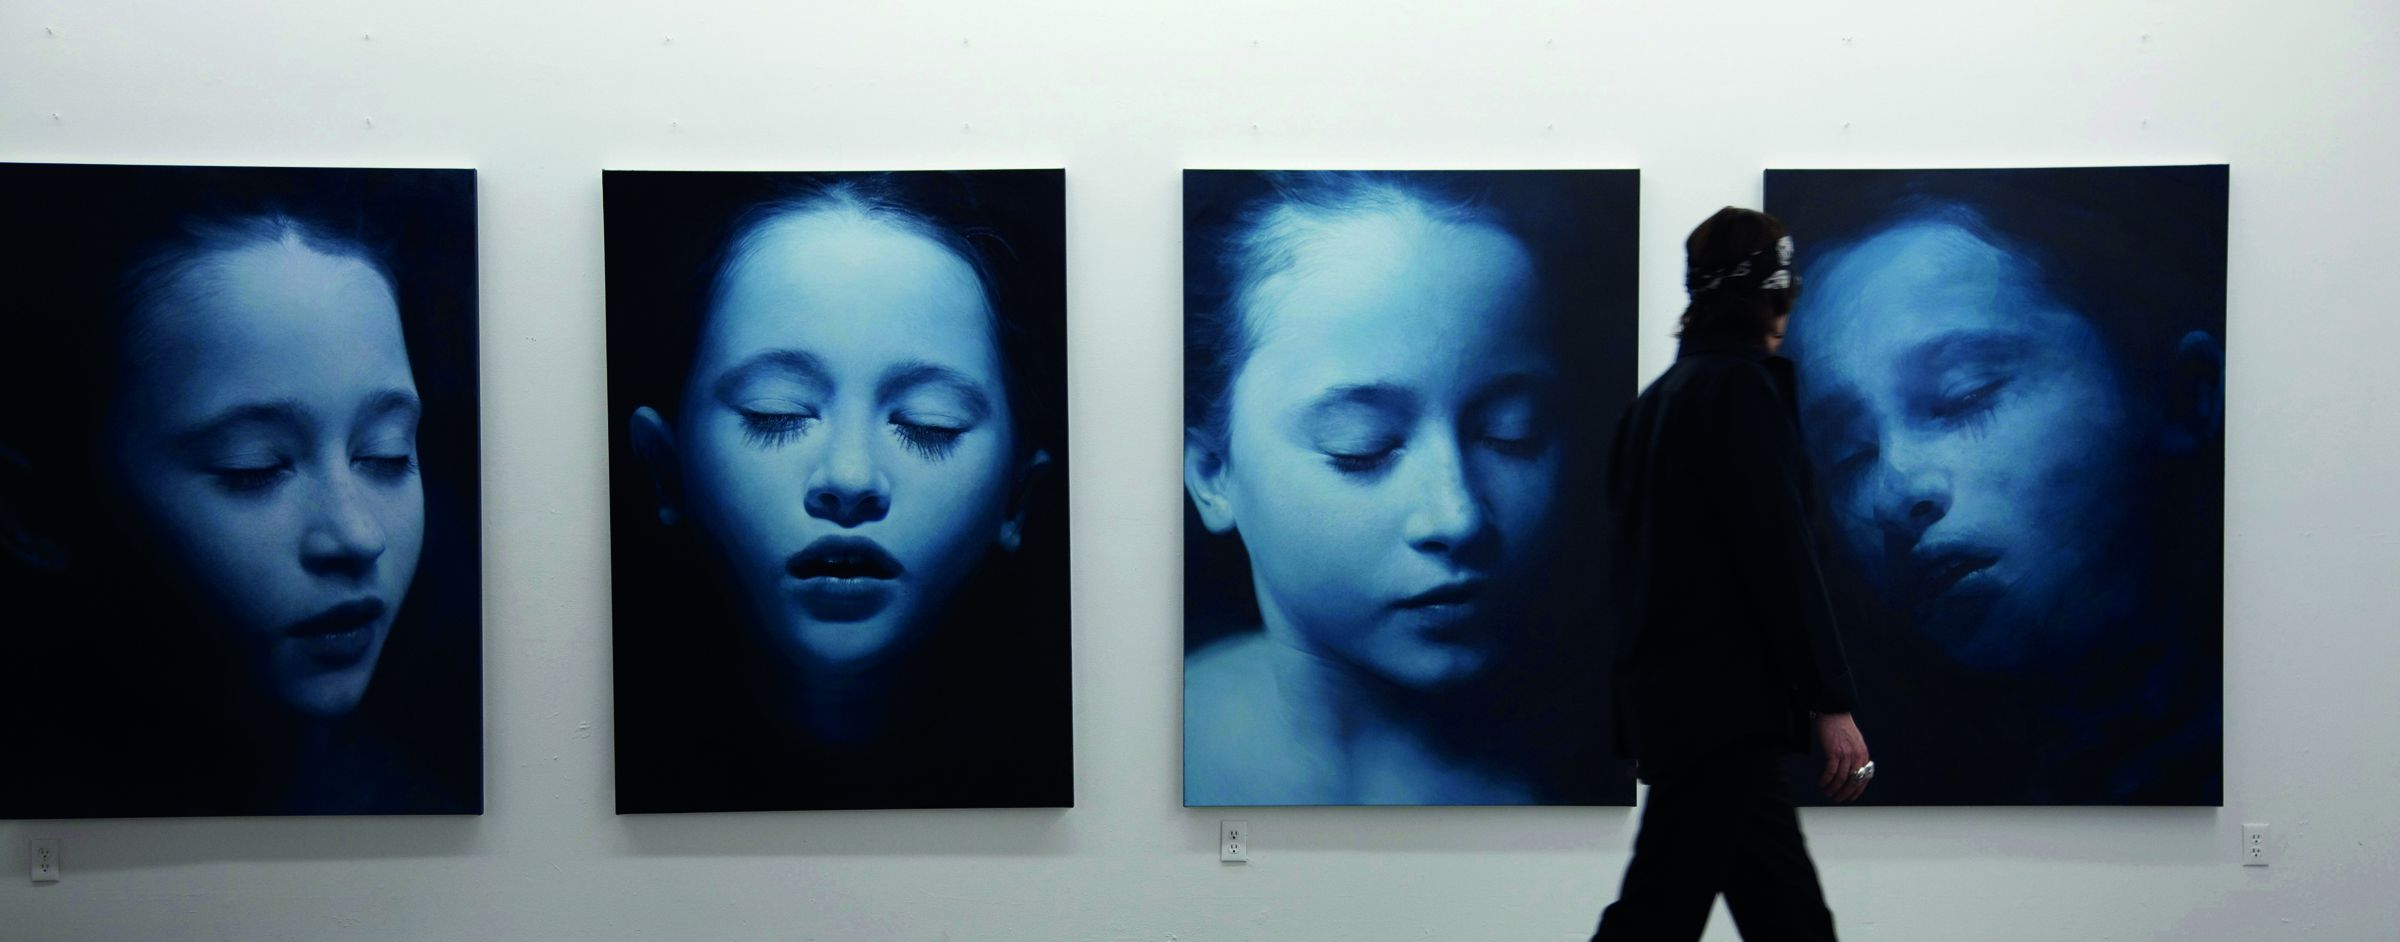 An image from Gottfried Helnwein and the Dreaming Child